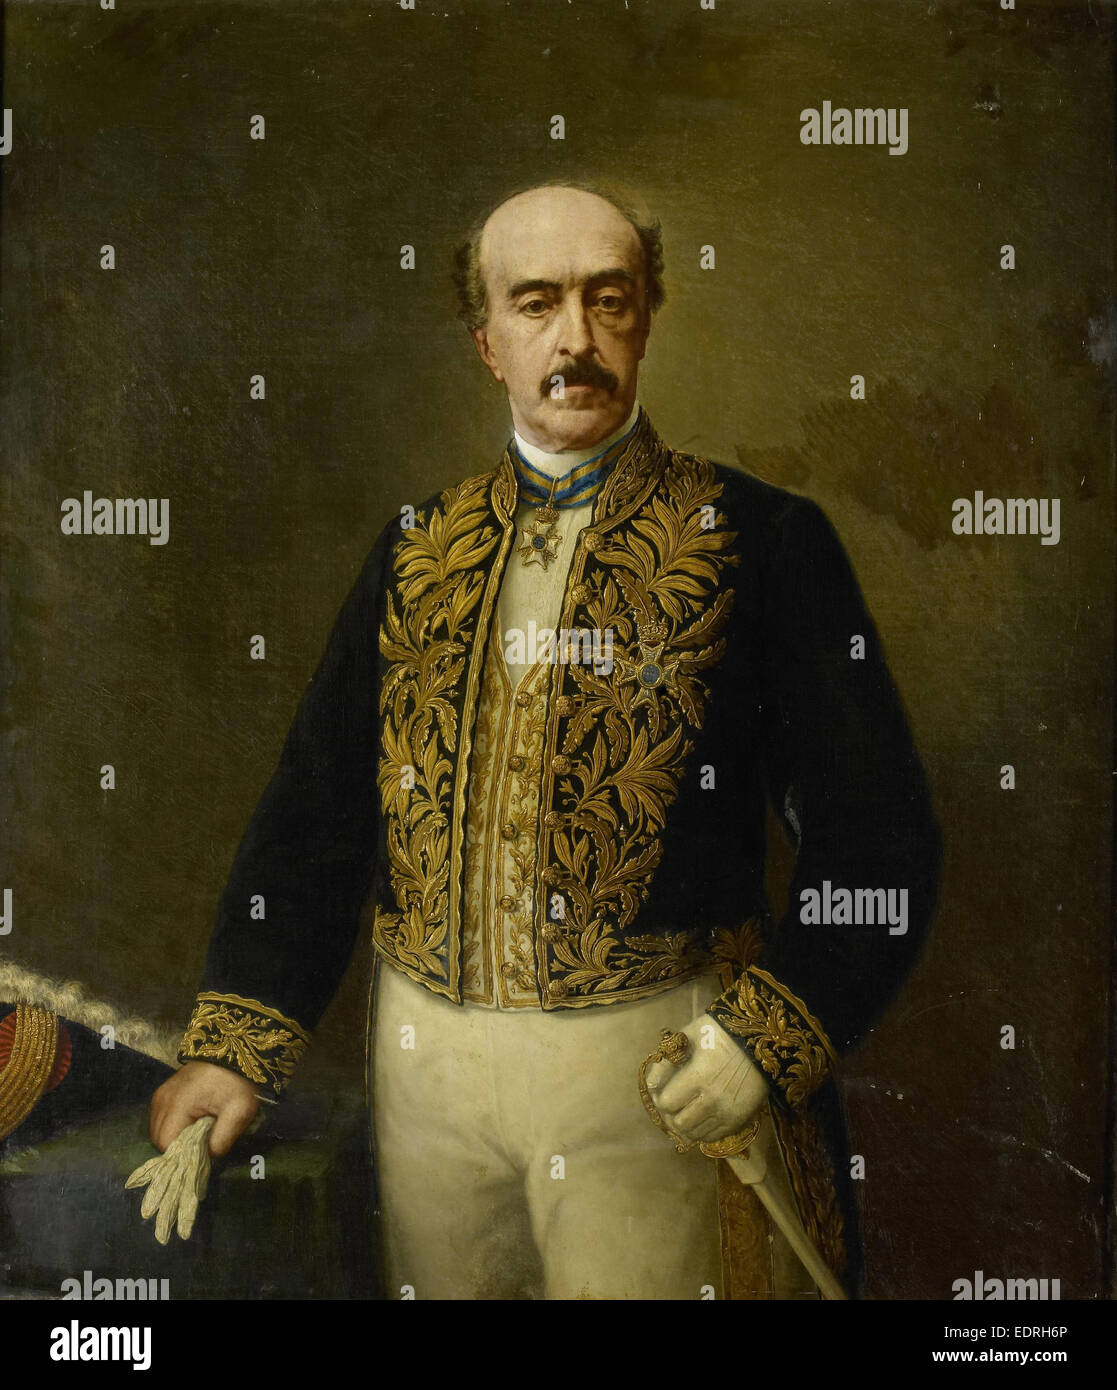 Otto van Rees (1823-92). Gouverneur-generaal, Governor-General (1884-88), Anonymous, after 1884 - c. 1899 - Stock Image